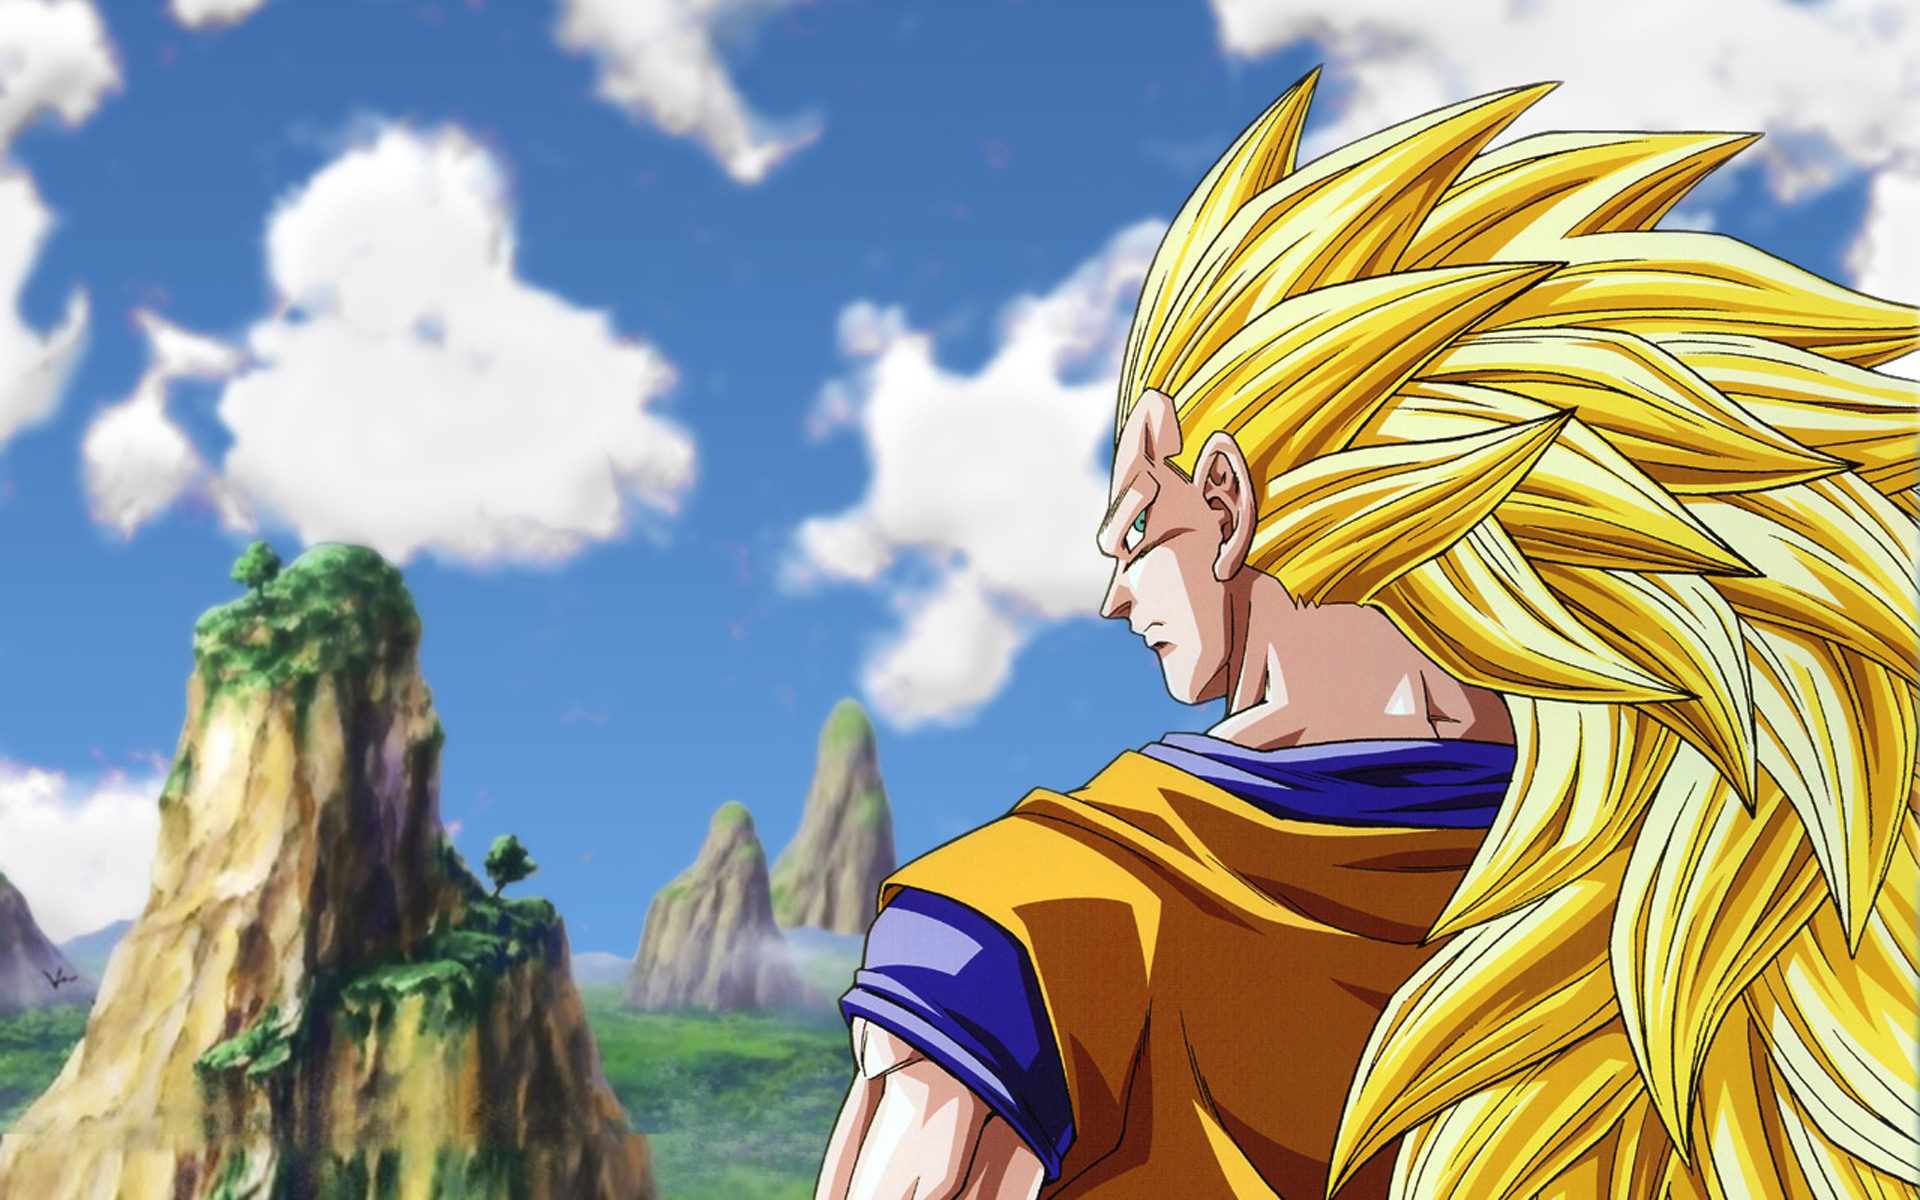 dragon desktop ball wallpaper original keyword 1920x1200 1920x1200